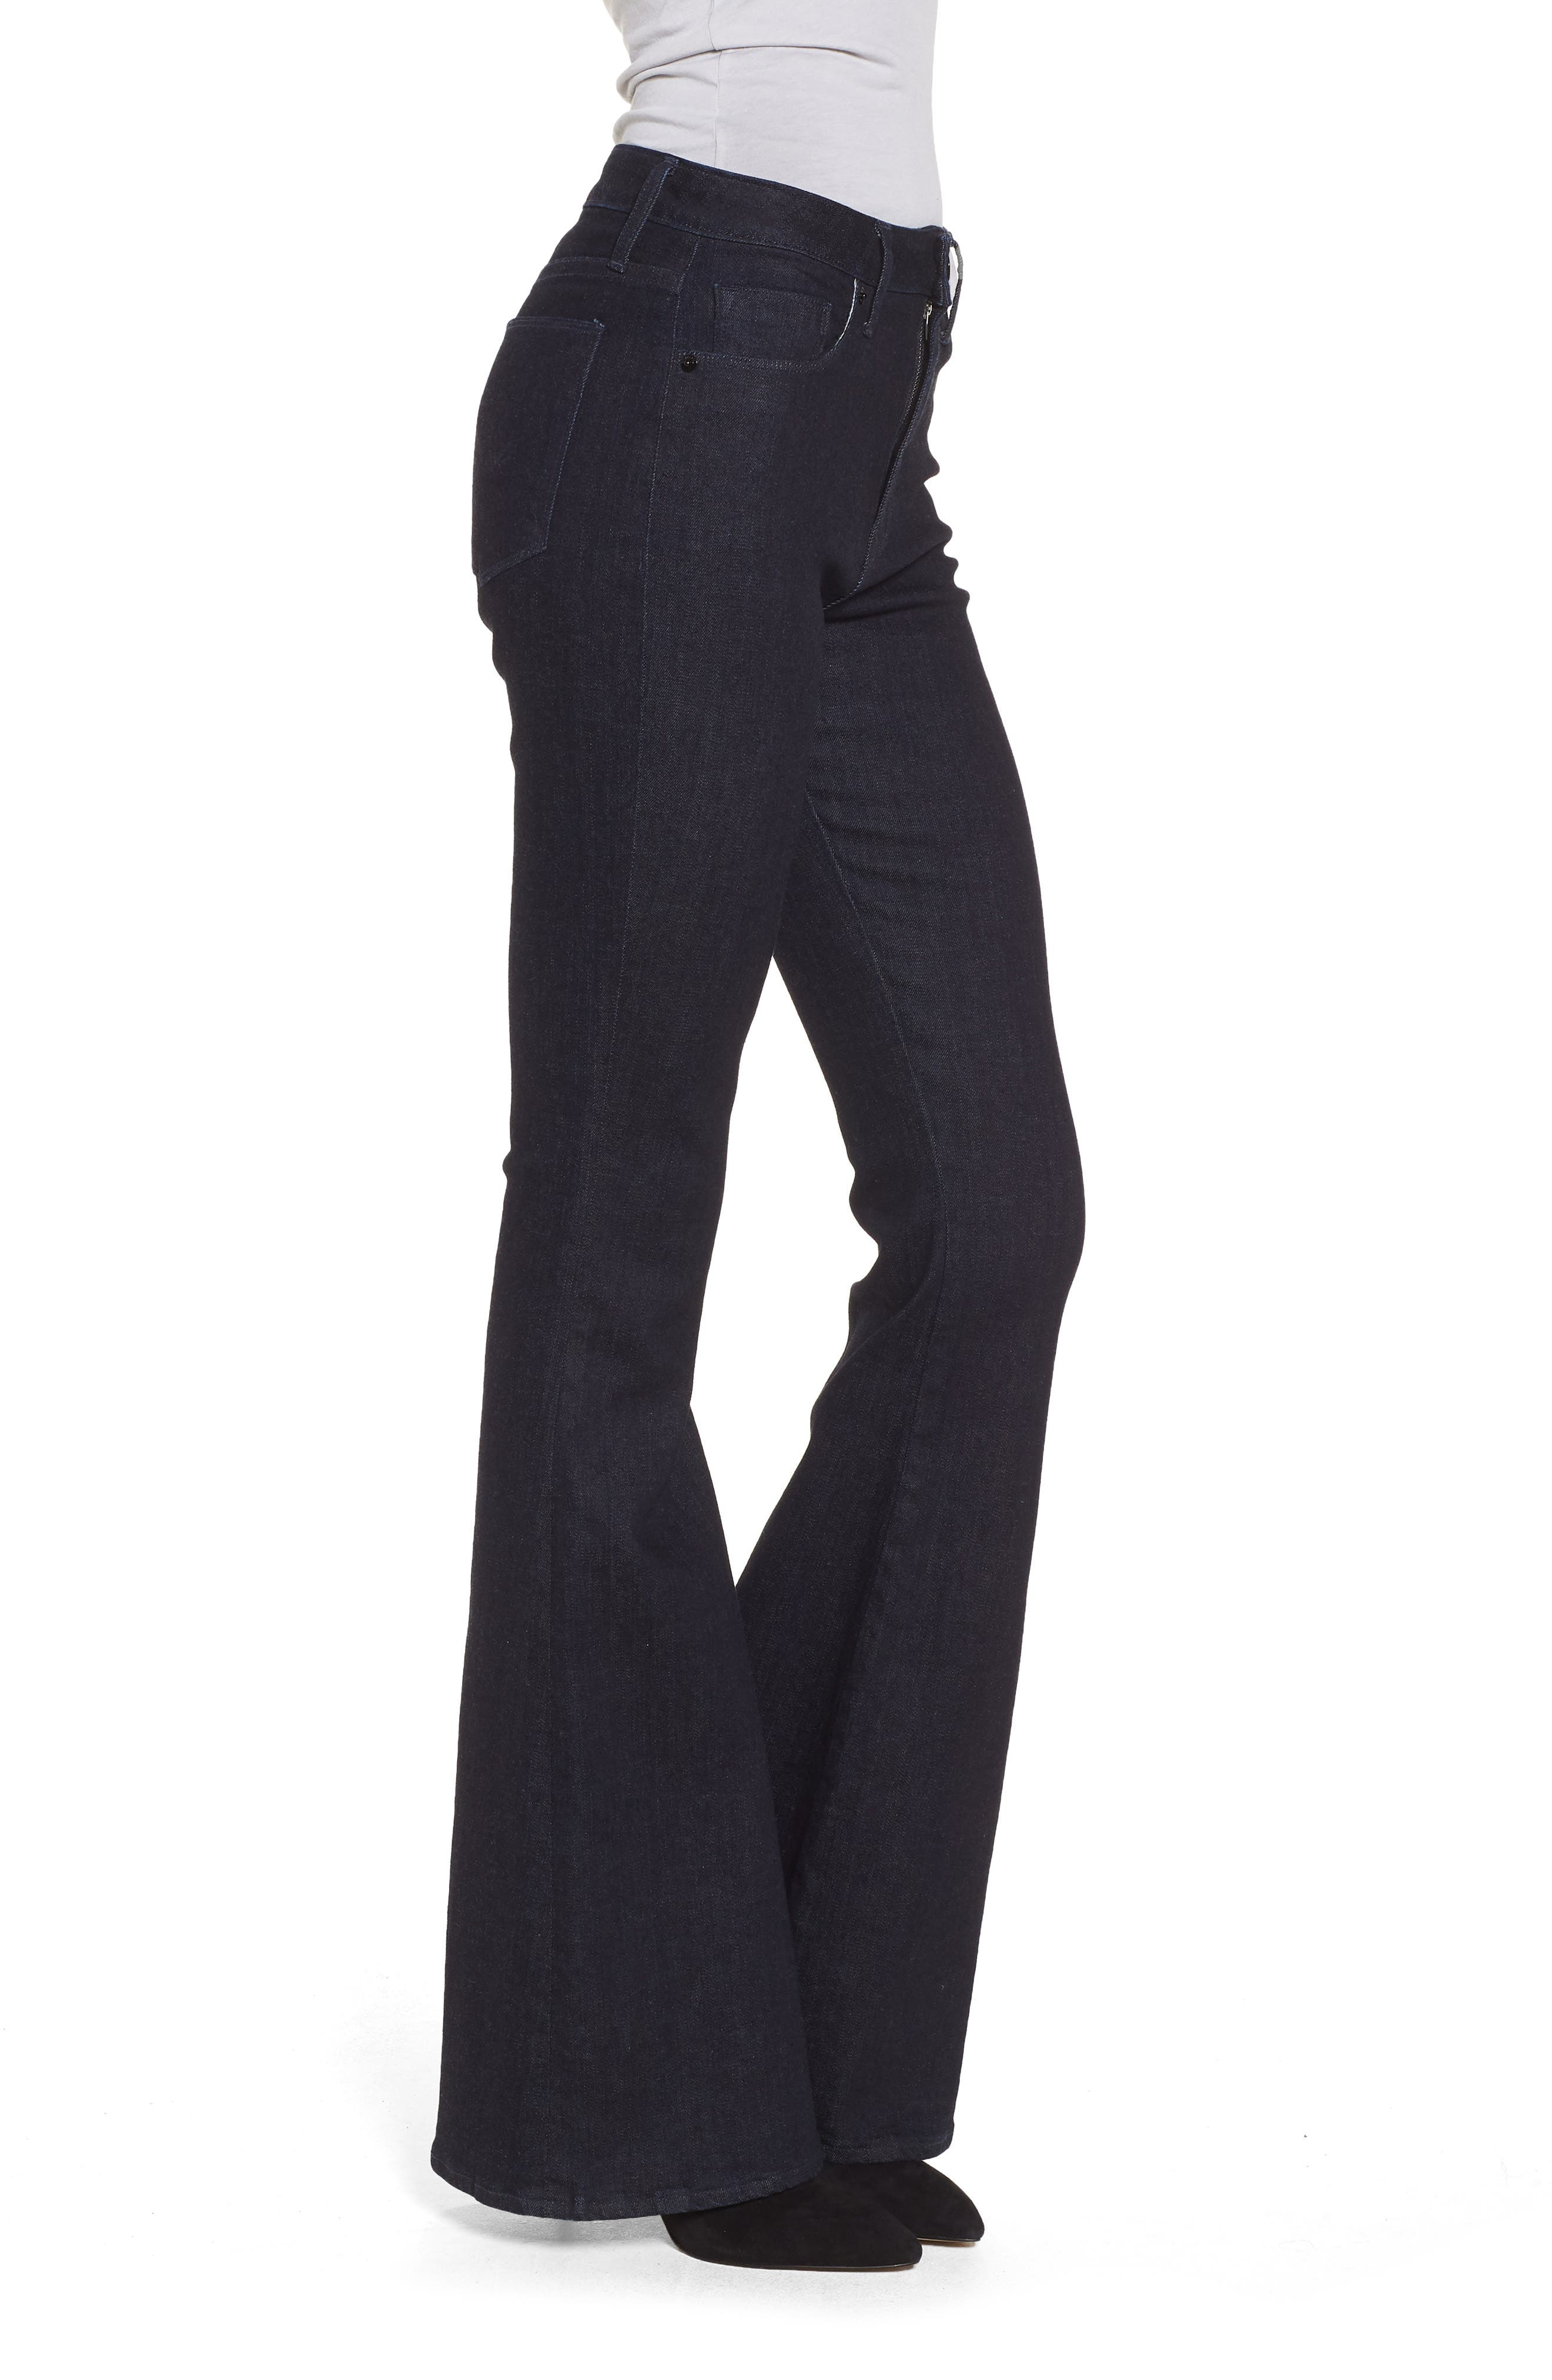 Holly High Waist Flare Jeans,                             Alternate thumbnail 3, color,                             Infuse